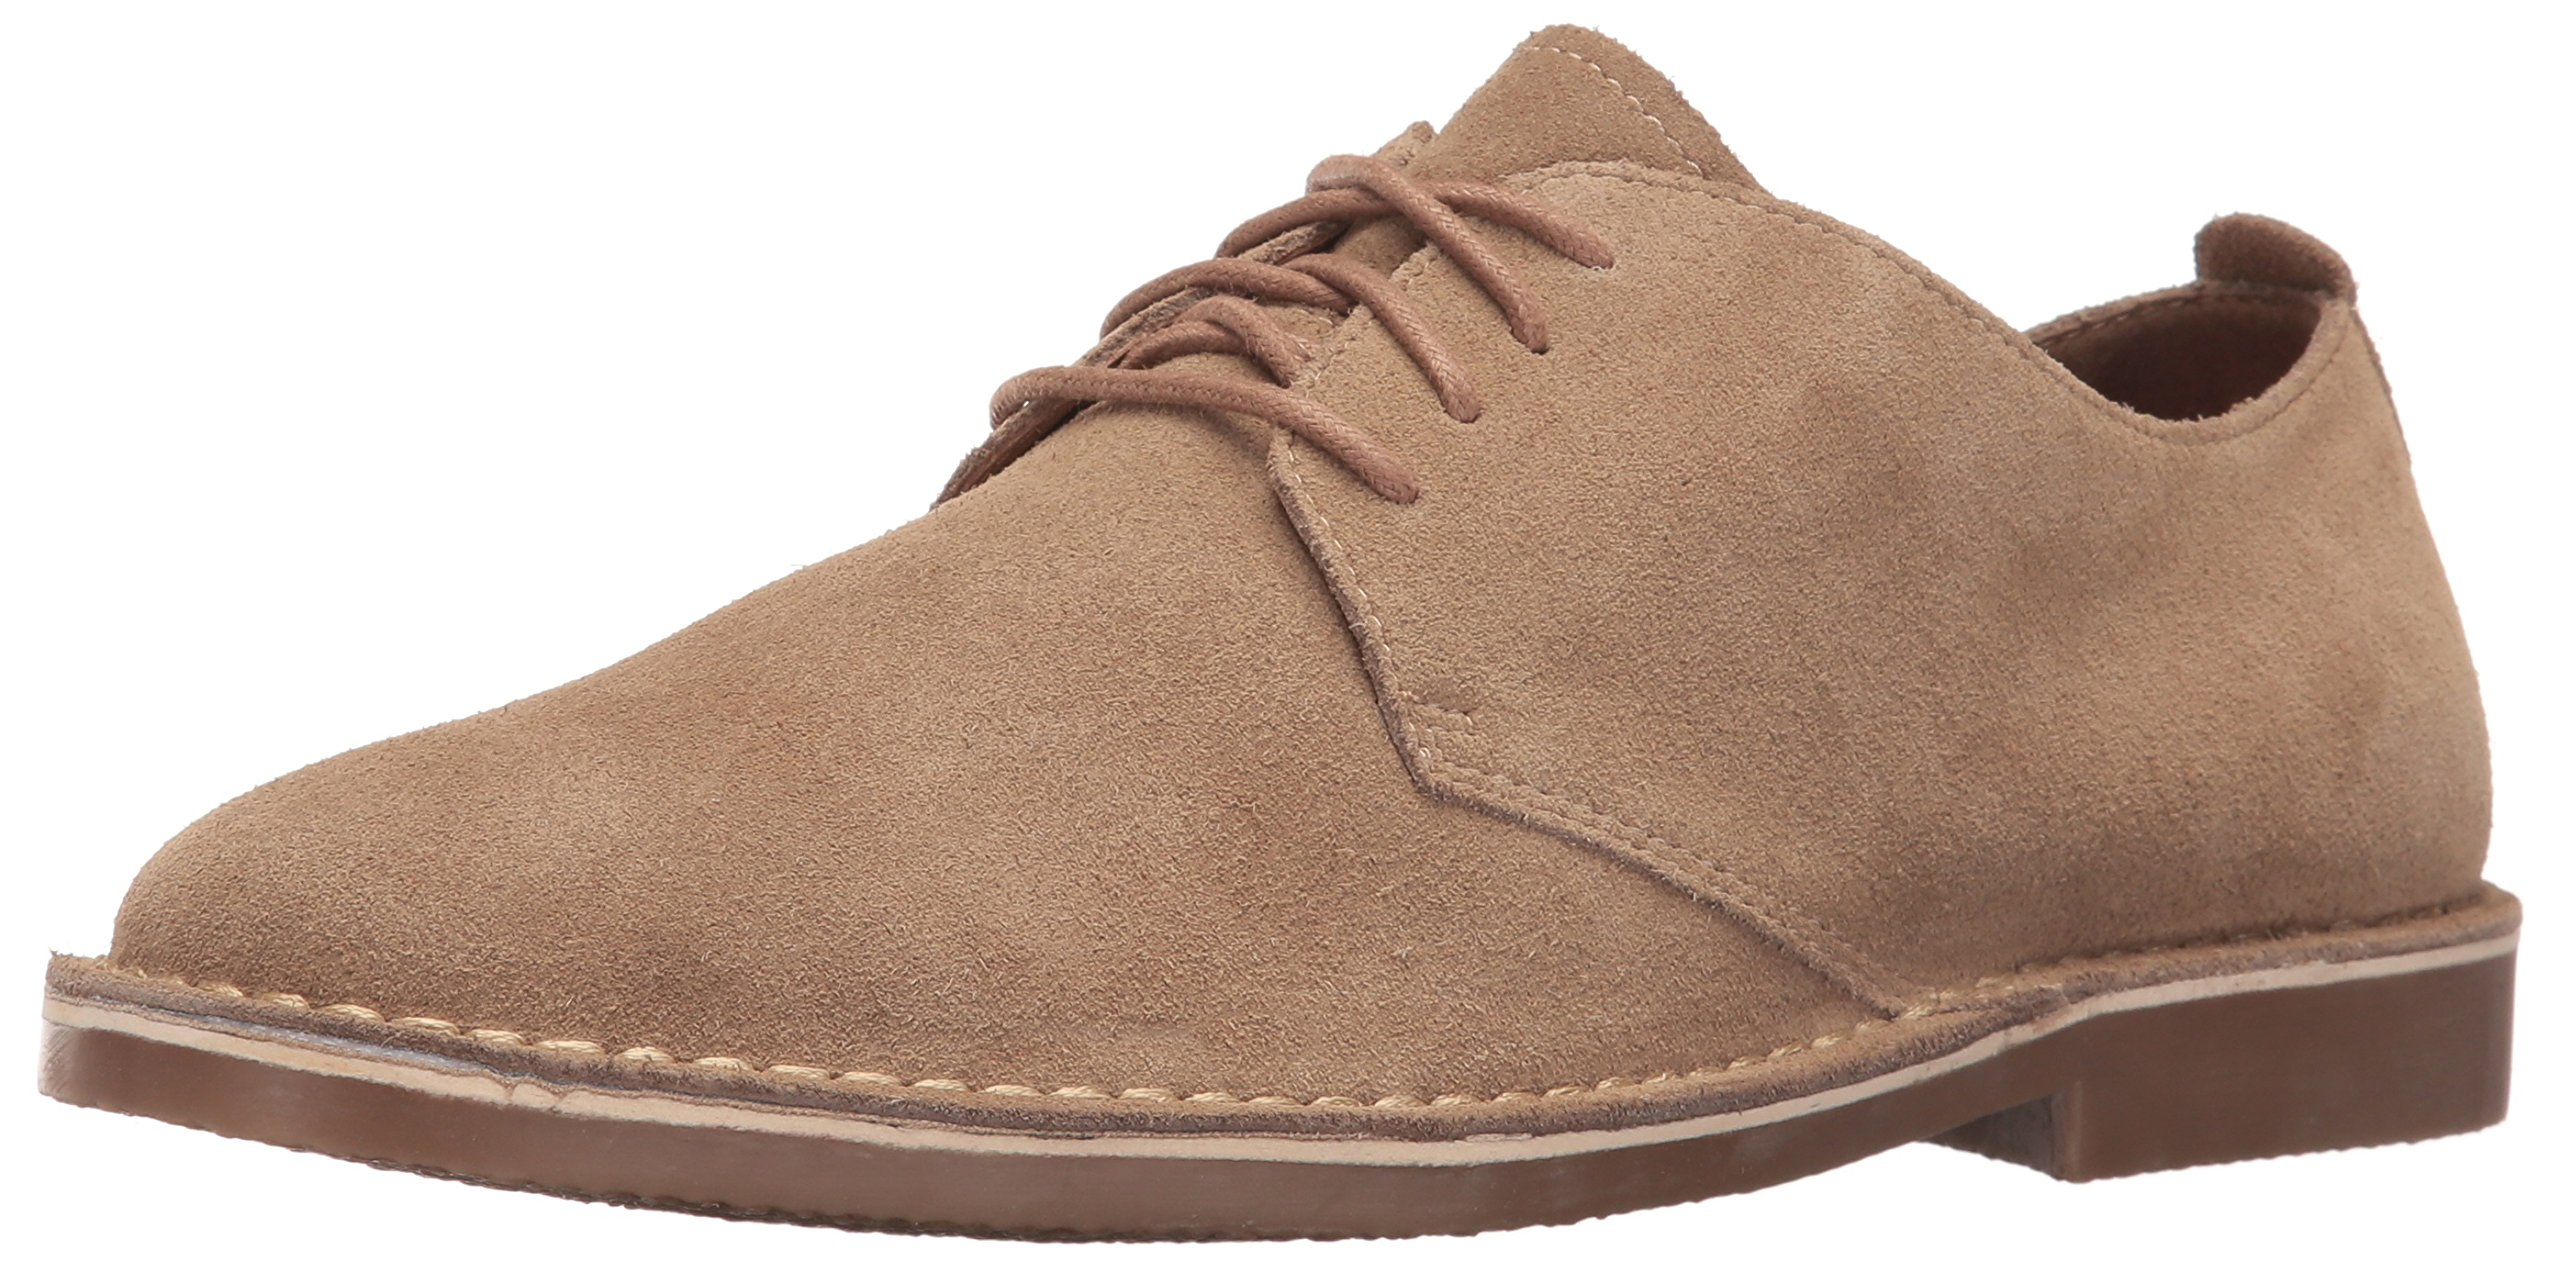 Nunn Bush Men's Gordy Oxford, Sand Suede, 12 W US